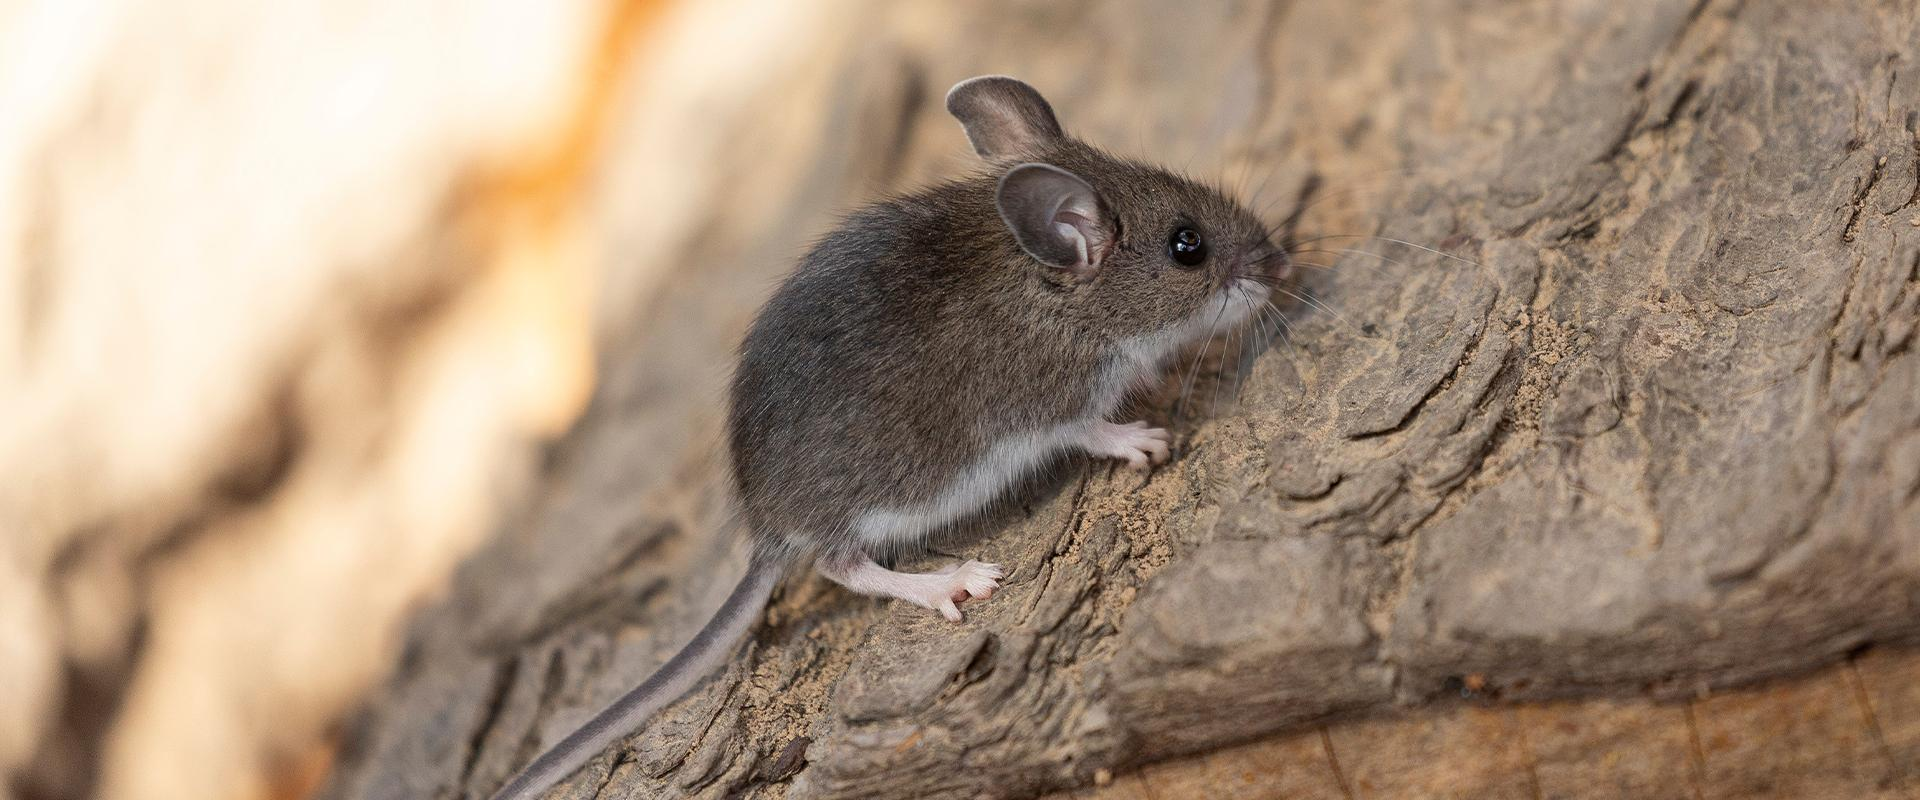 mouse on a log